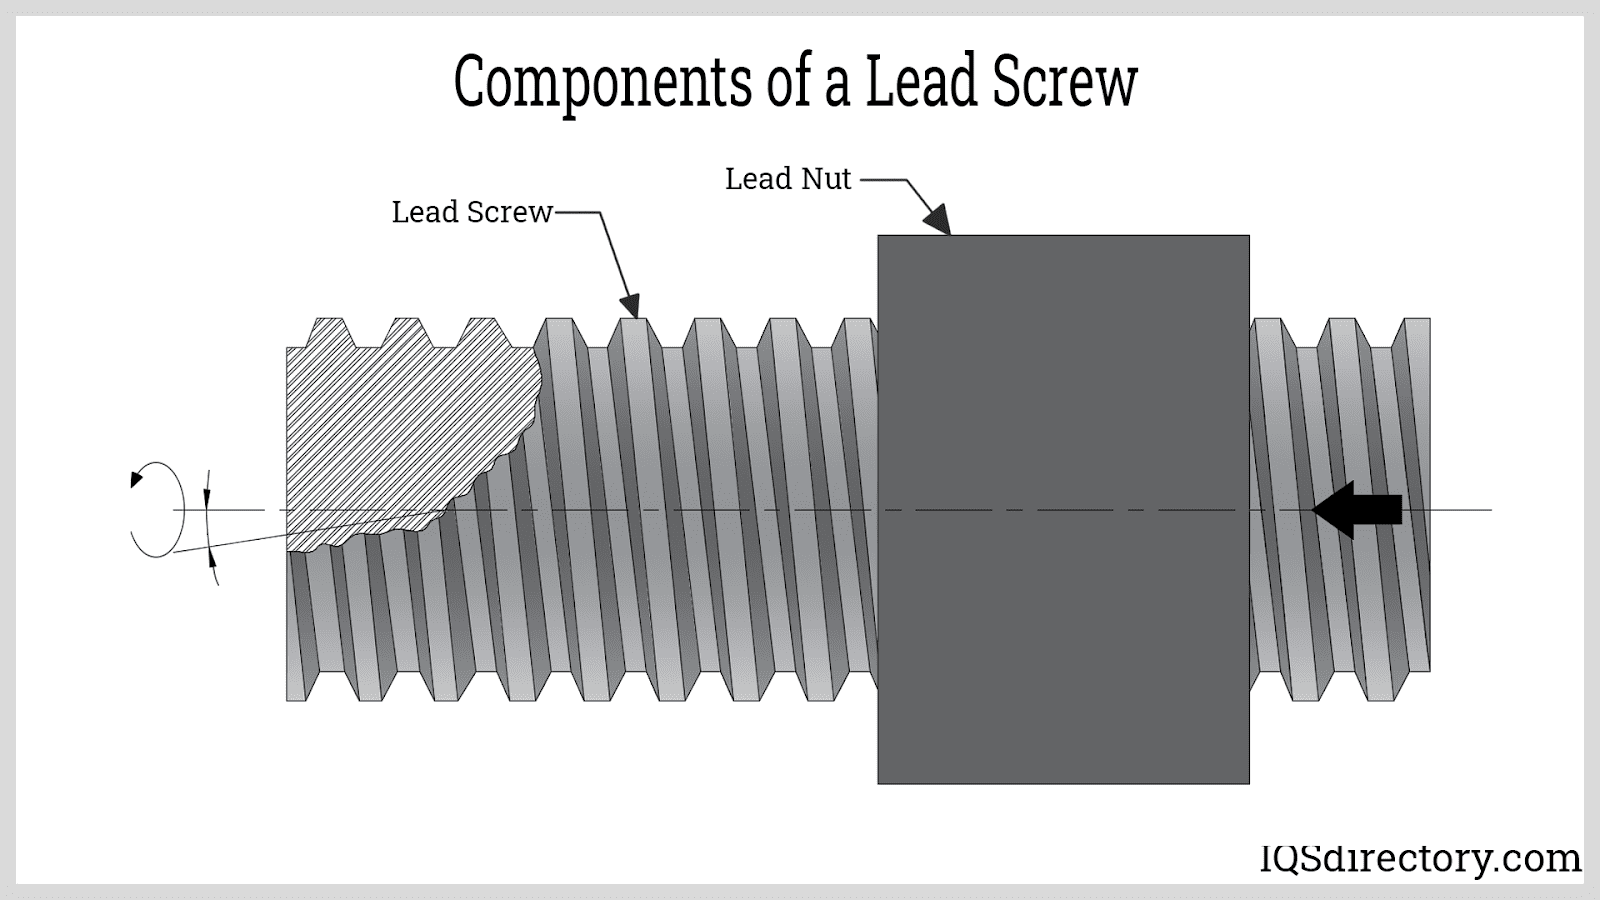 Components of a Lead Screw